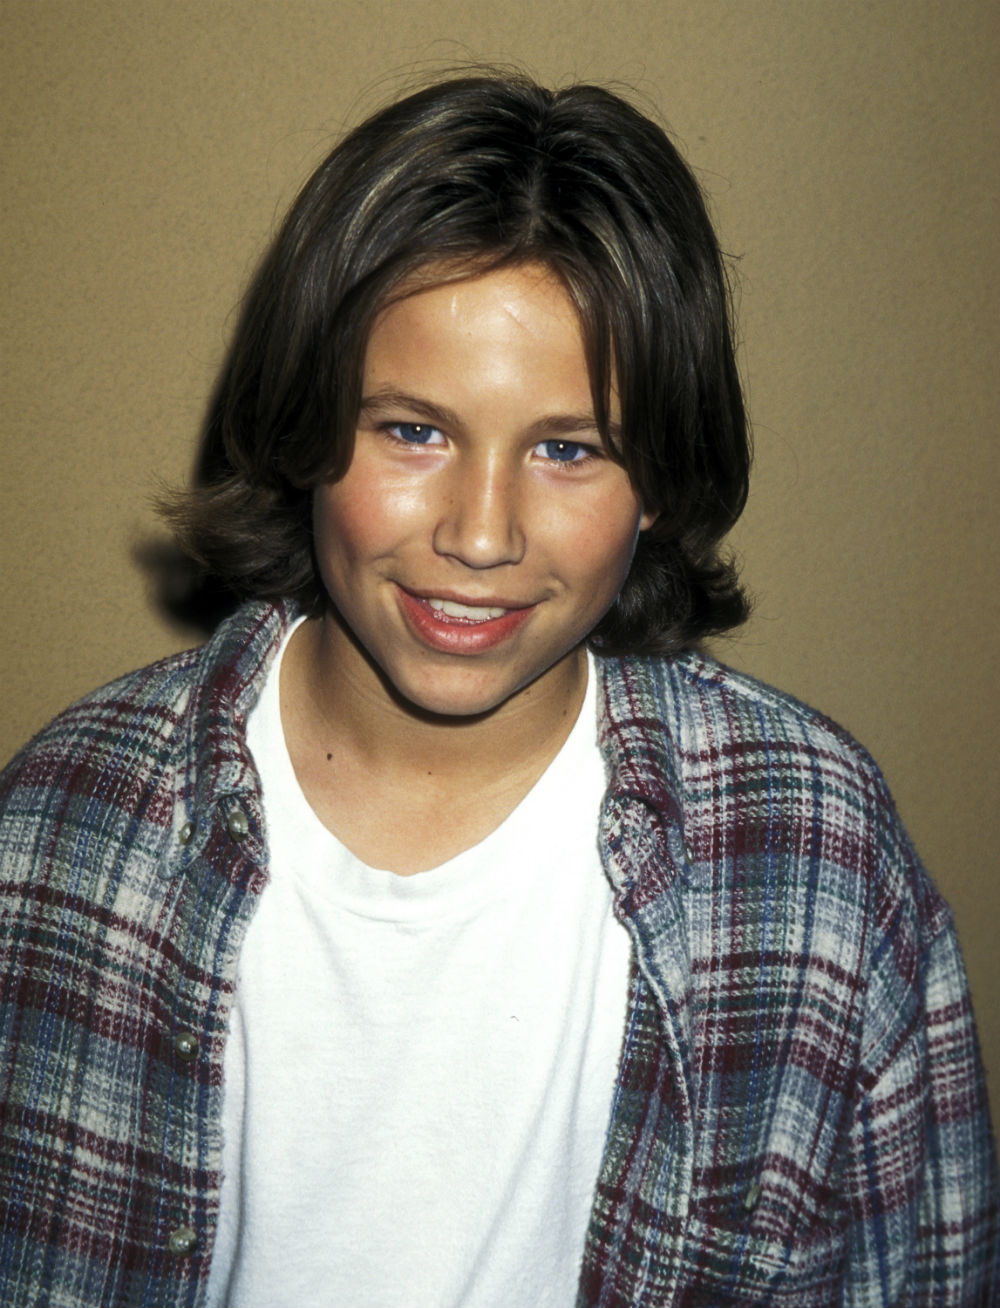 Here's what Jonathan Taylor Thomas looks like today